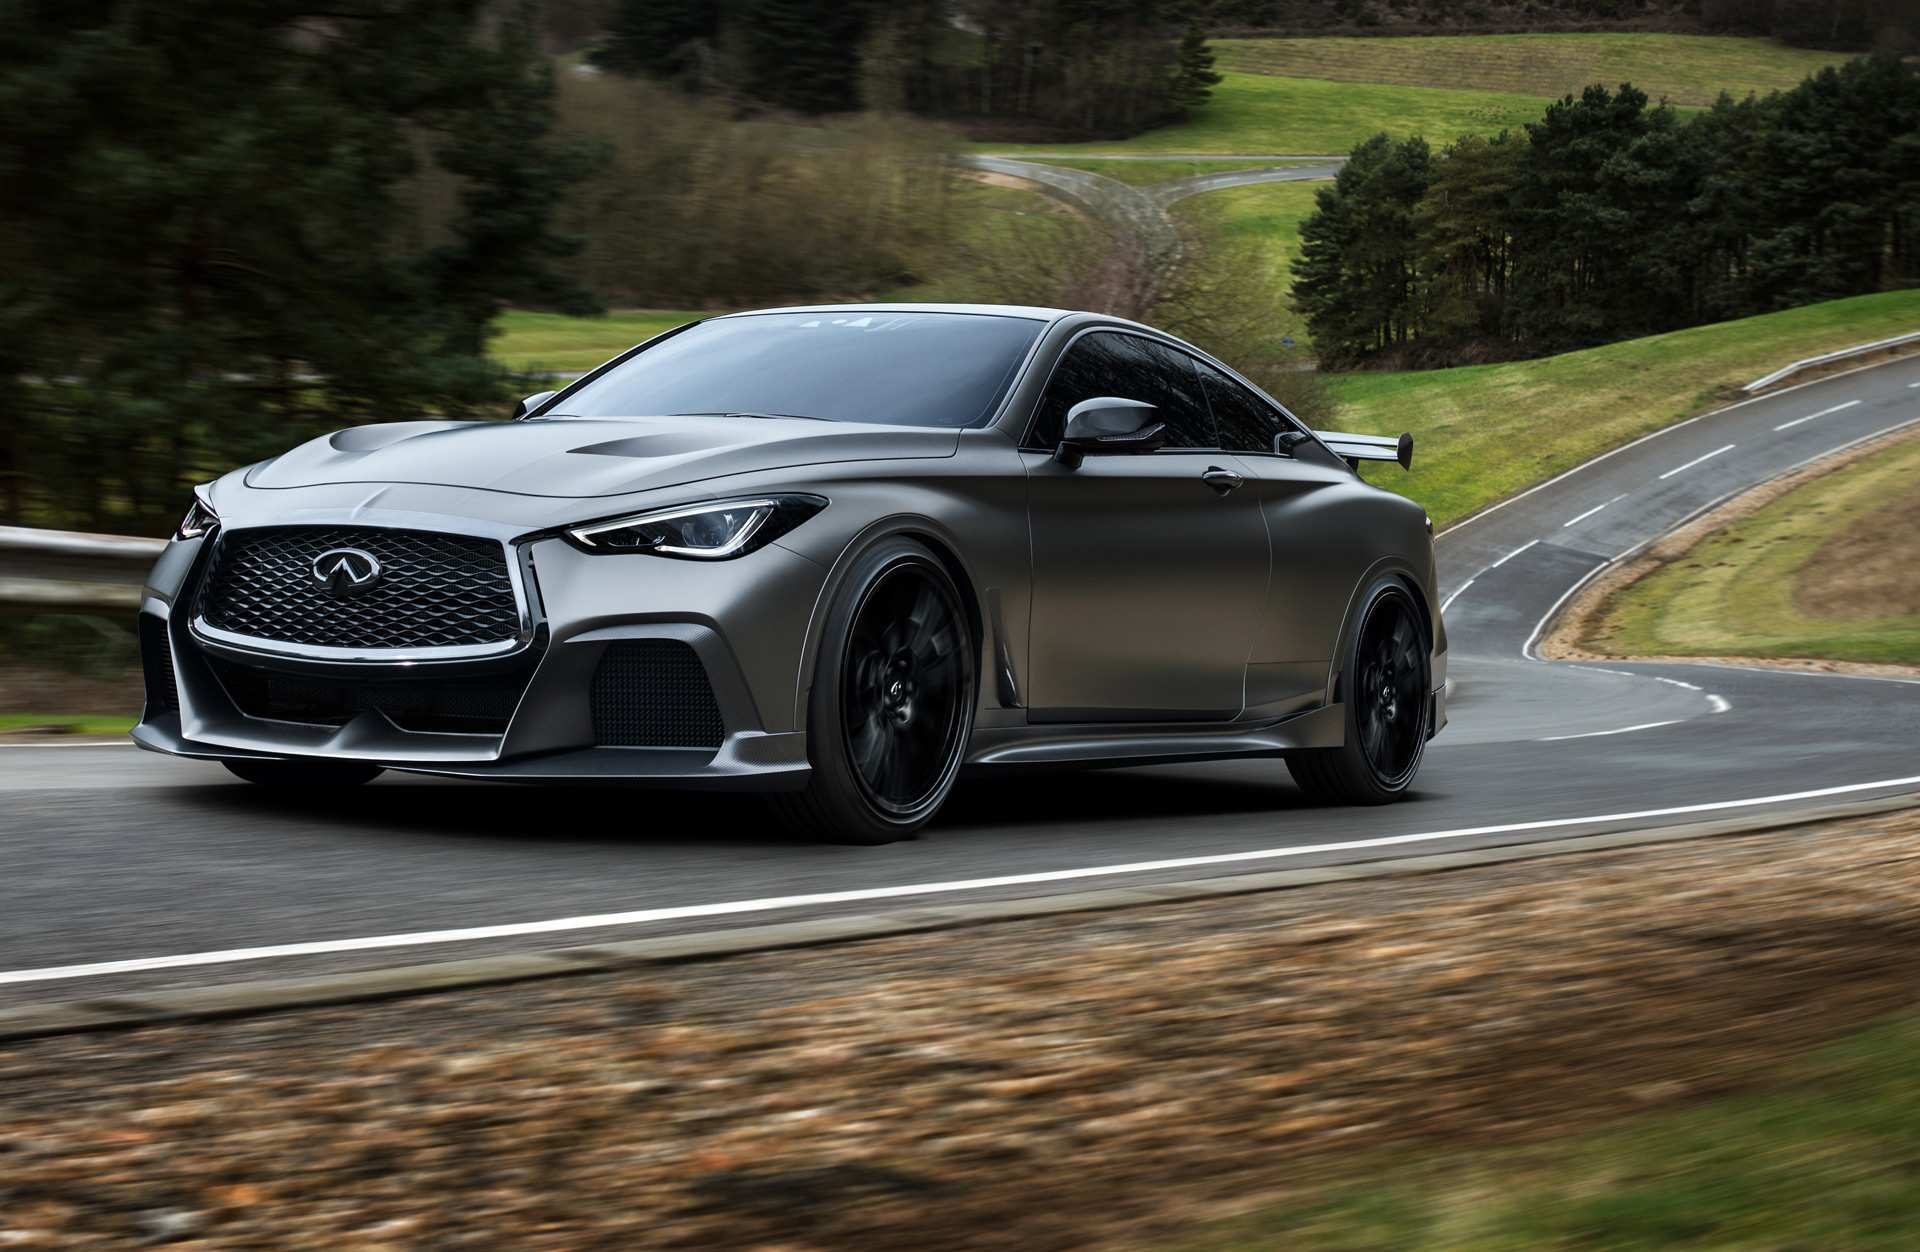 49 The Infiniti Q60 2020 Picture for Infiniti Q60 2020